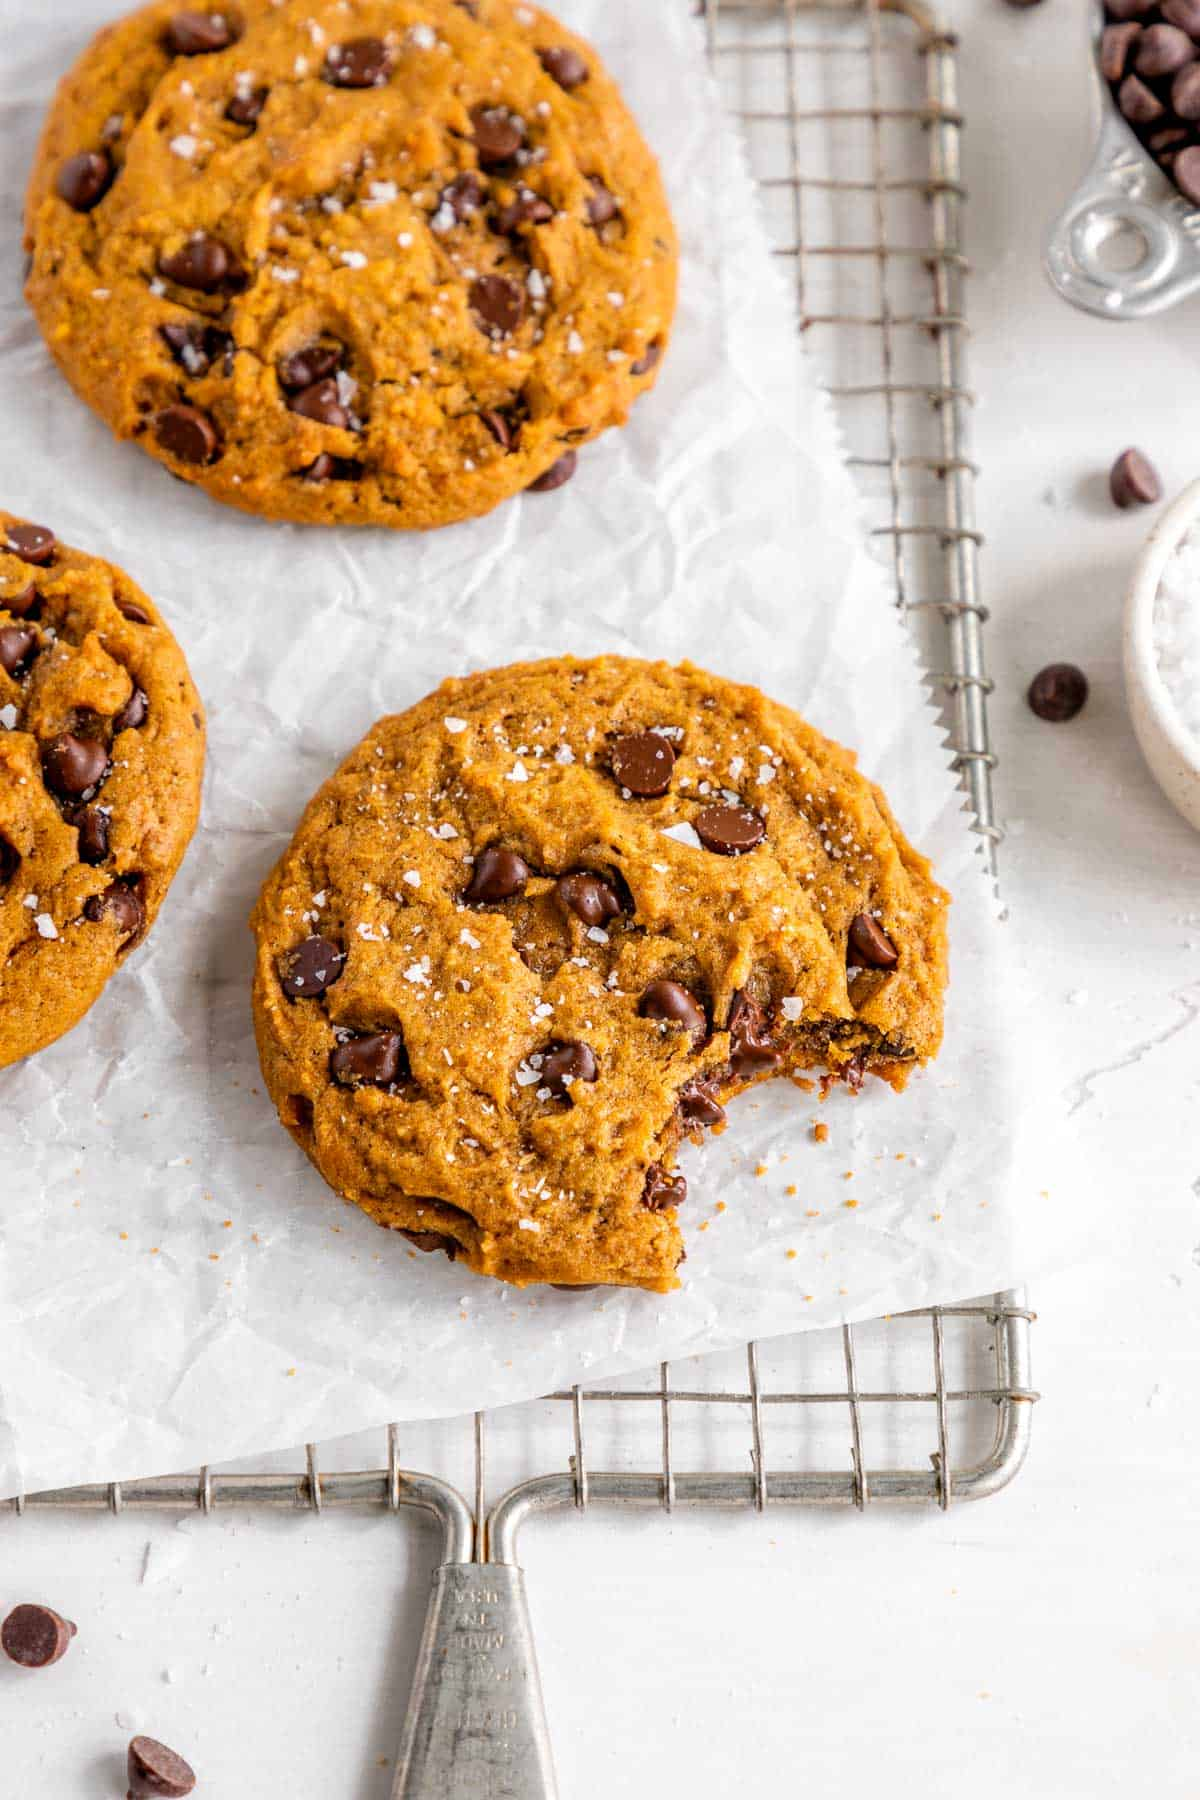 vegan pumpkin chocolate chip cookies on a cooling rack with a bite taken out of the middle cookie